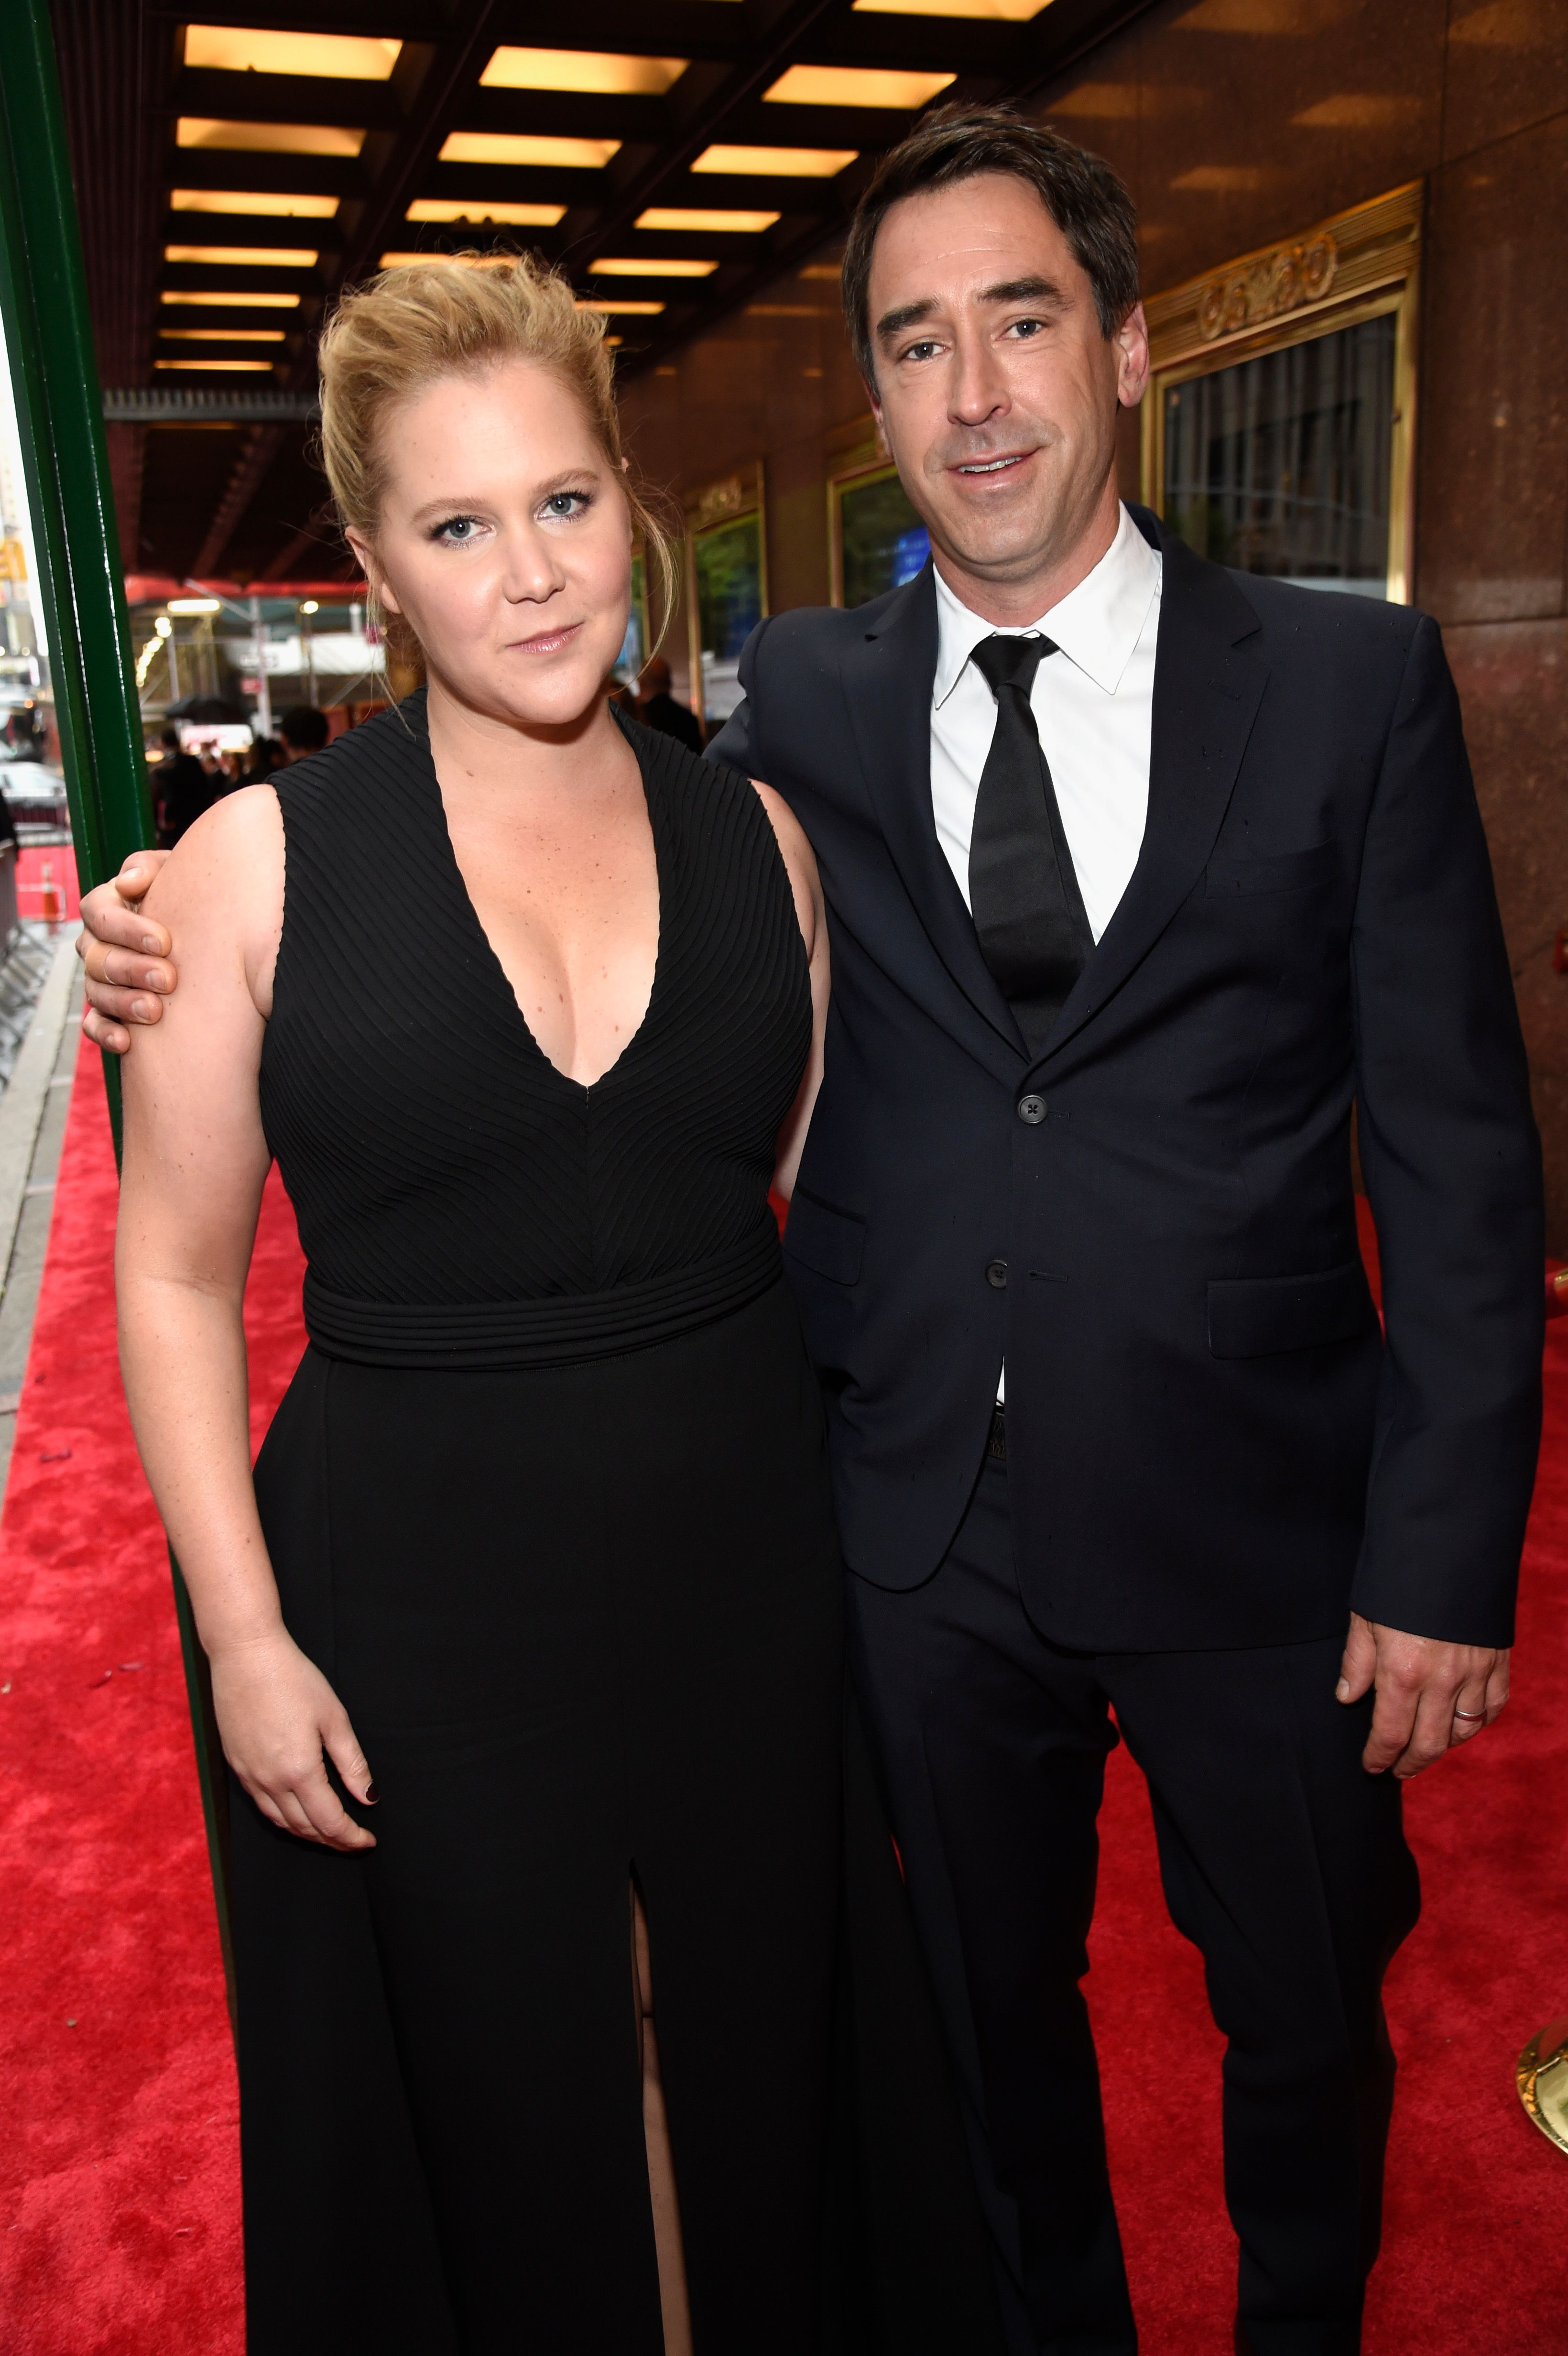 Amy Schumer and Chris Fischer at the 72nd Annual Tony Awards in 2018, in New York City | Source: Getty Images